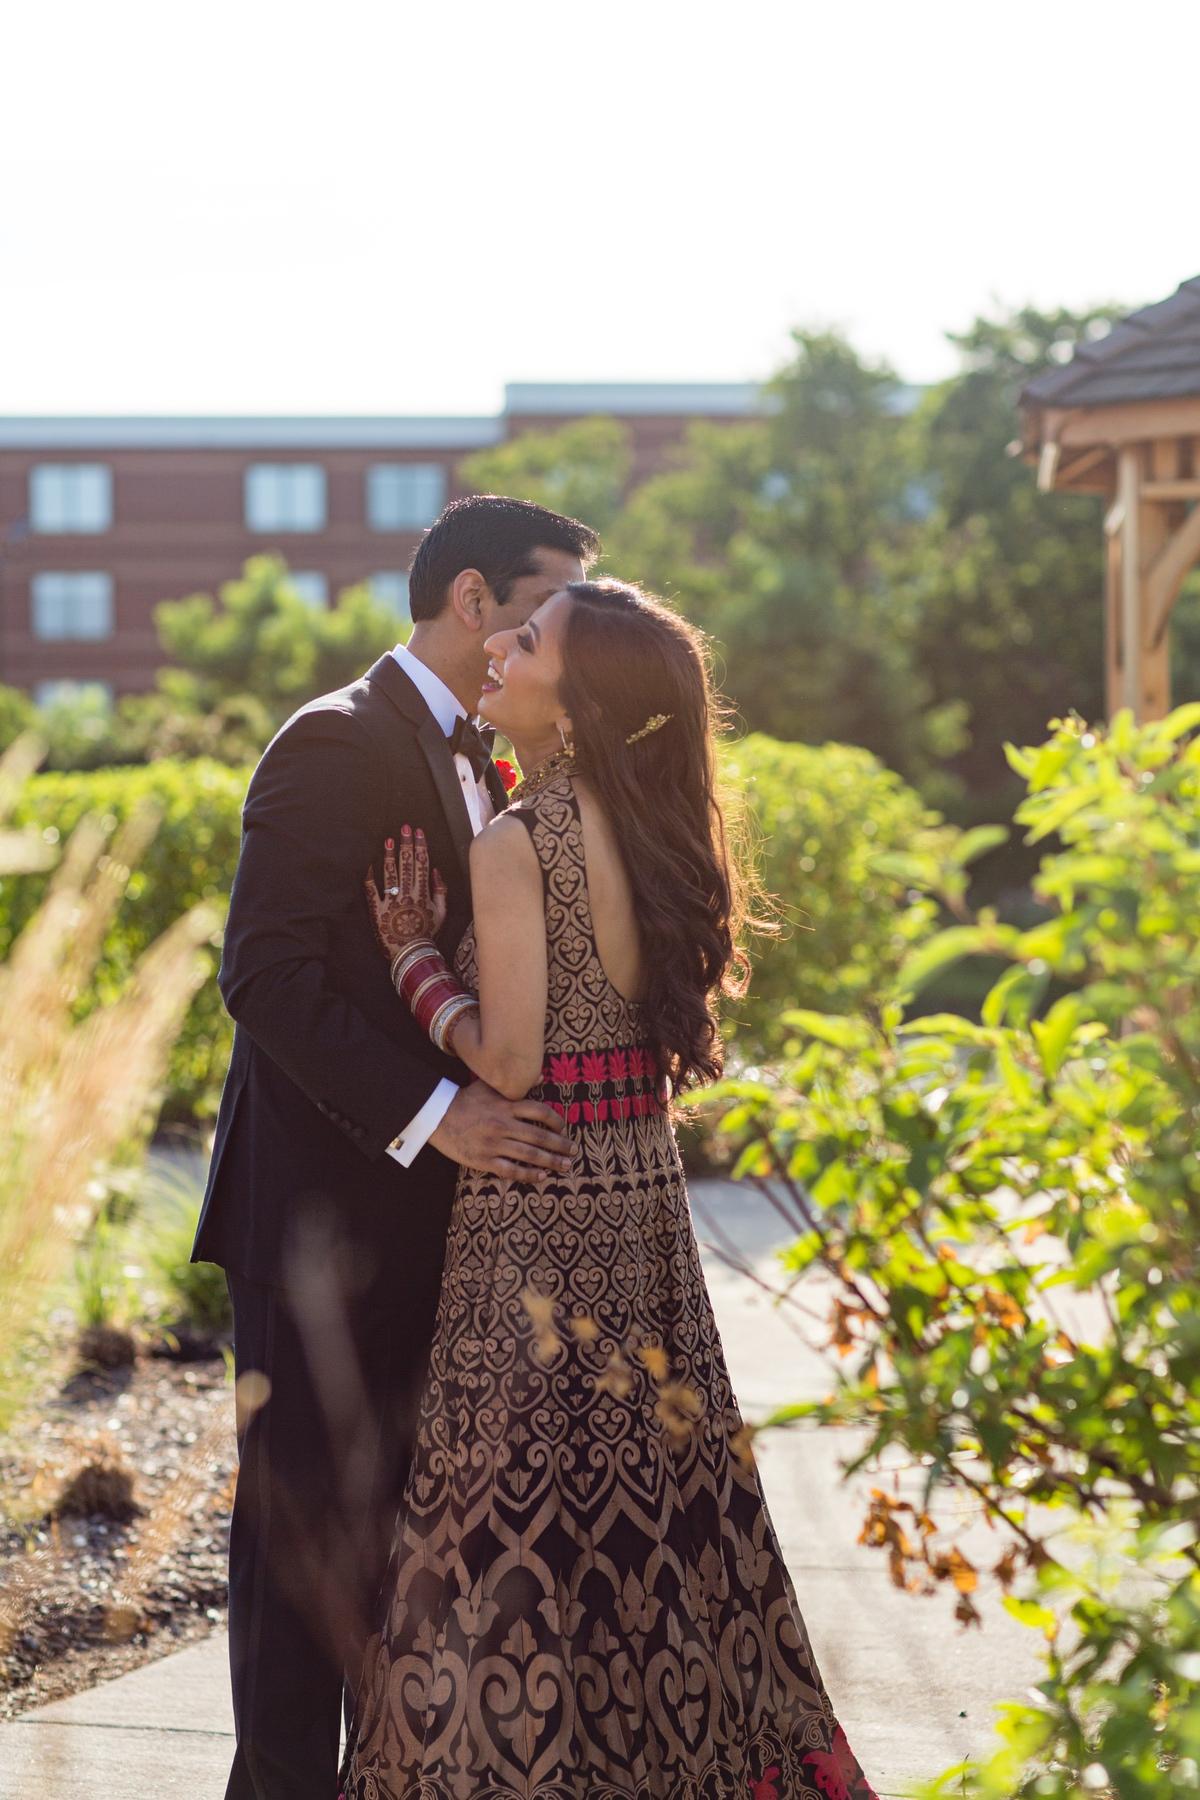 Le Cape Weddings - South Asian Wedding - Chicago Wedding Photographer P&V-98.jpg